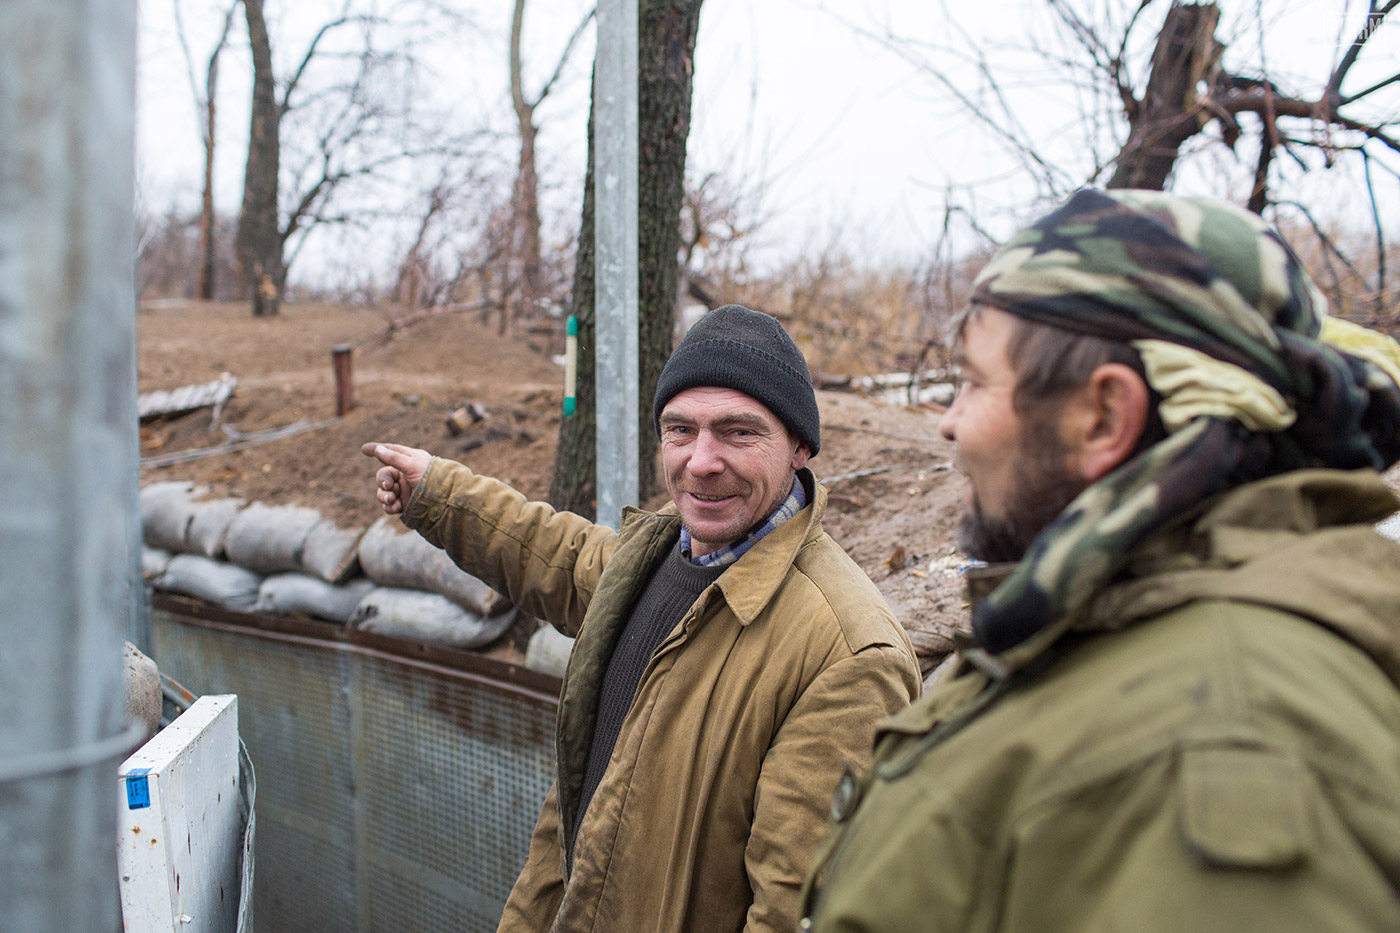 A Ukrainian soldier points further down a trench position. English is not a common language in Ukraine, so we communicated with pointing, gestures, and laughter.